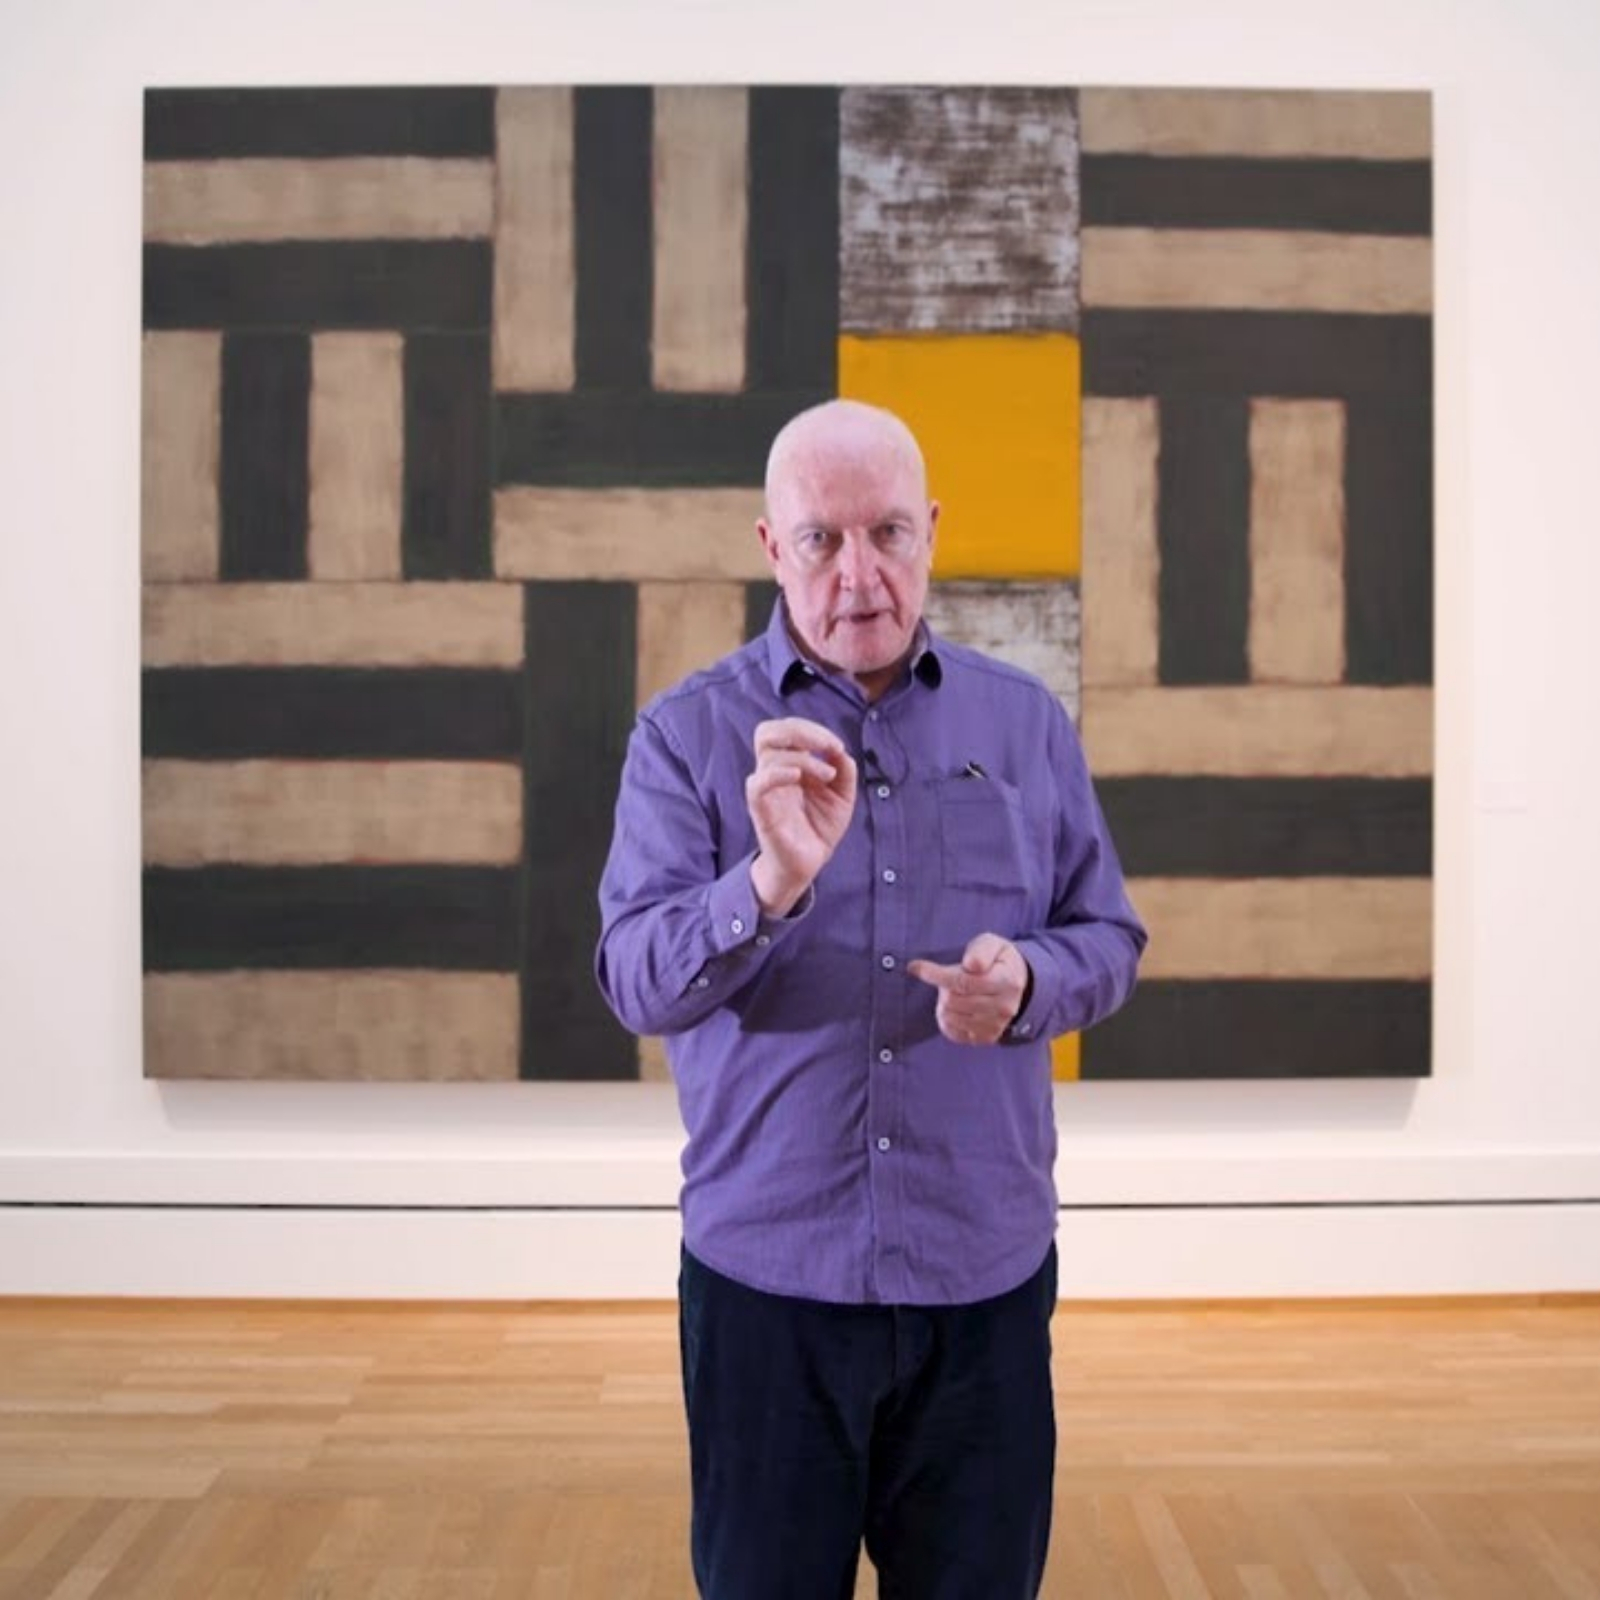 Sean Scully video